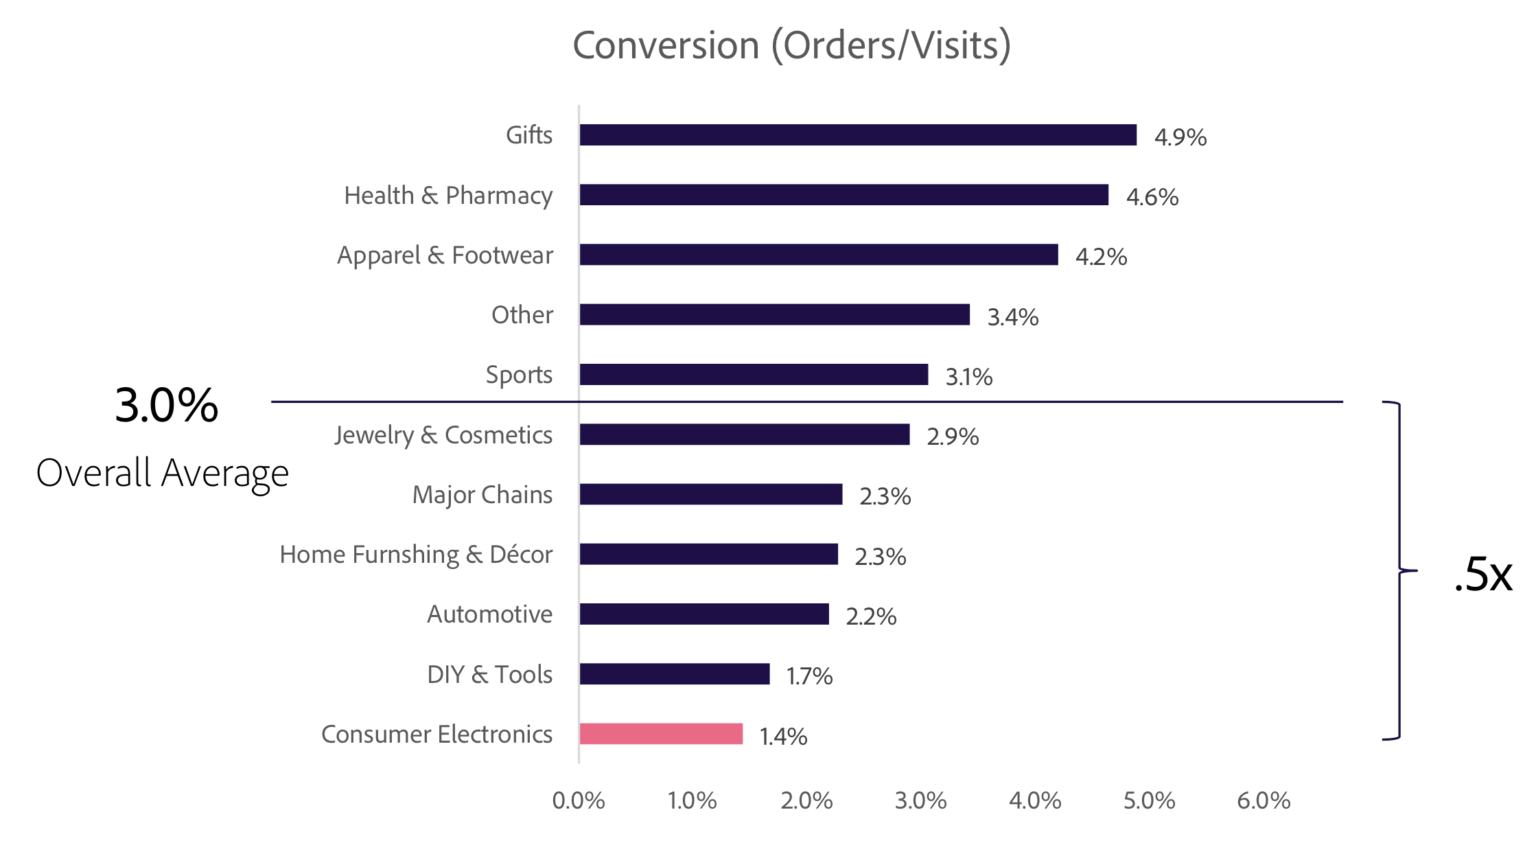 Chart from the Adobe Digital Index 2020 reporting conversions by various types of products